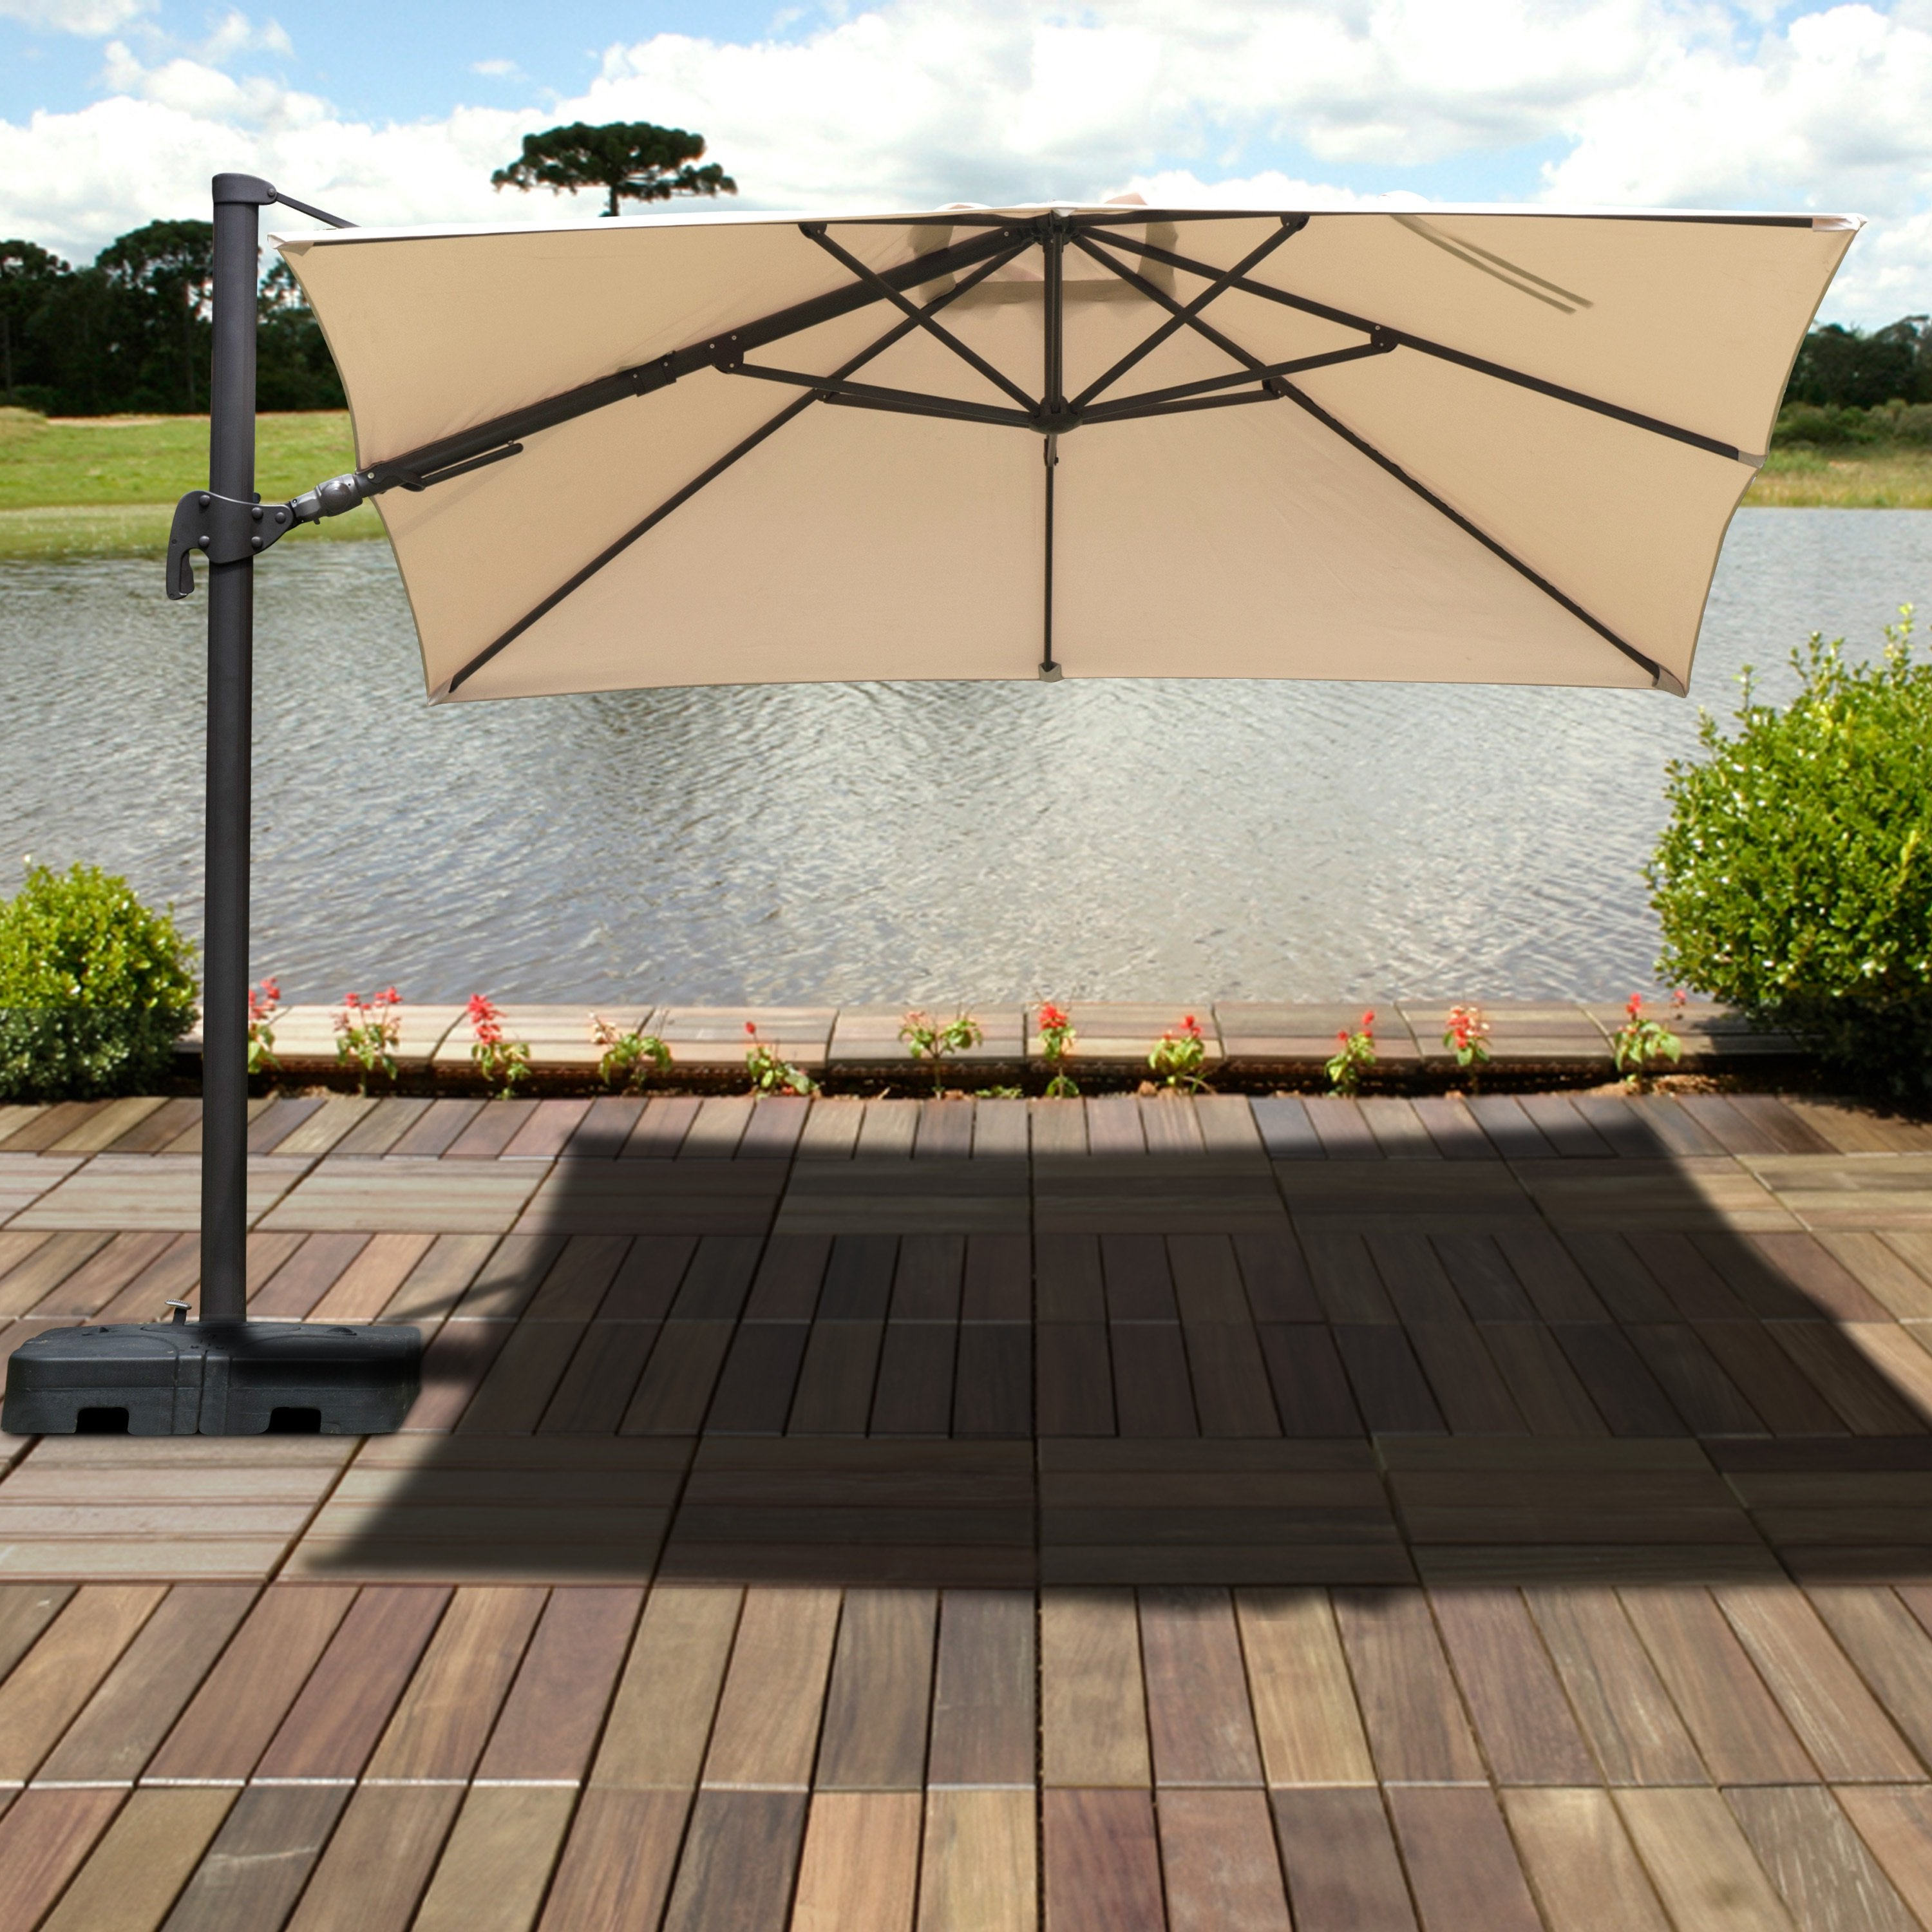 Preferred Beachcrest Home Gemmenne 10' Square Cantilever Umbrella Intended For Mald Square Cantilever Umbrellas (View 4 of 20)